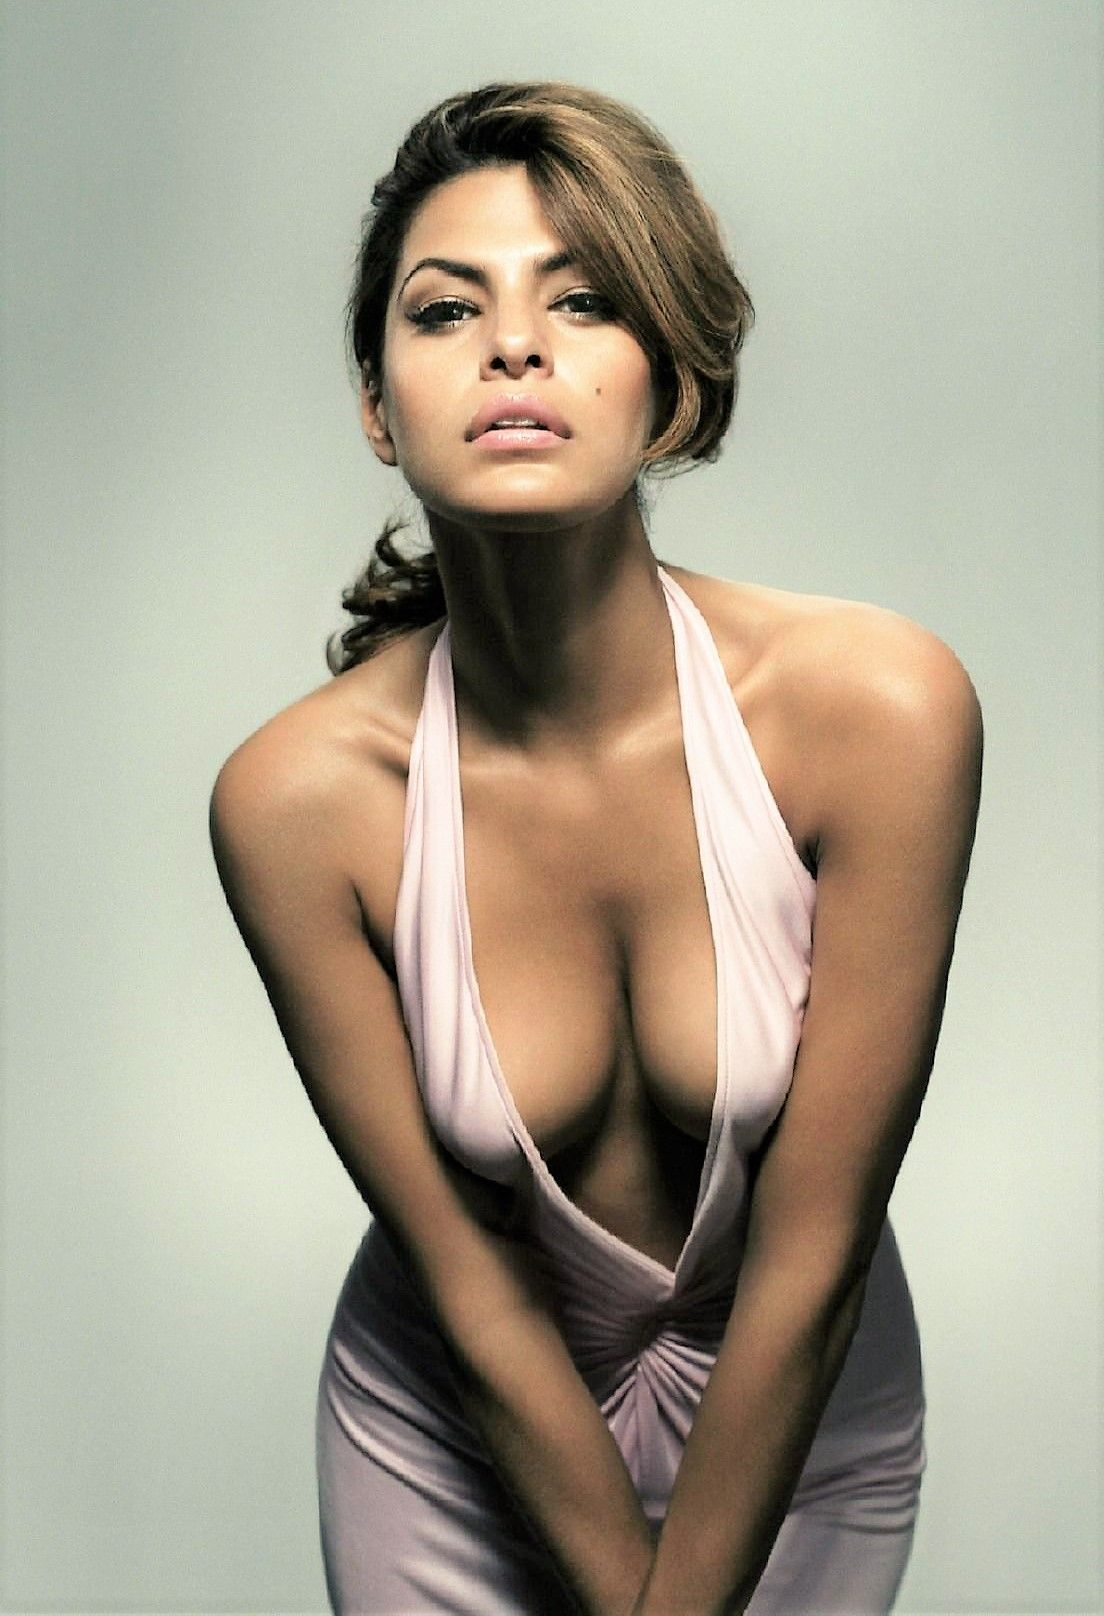 butt Cleavage Eva Mendes naked photo 2017